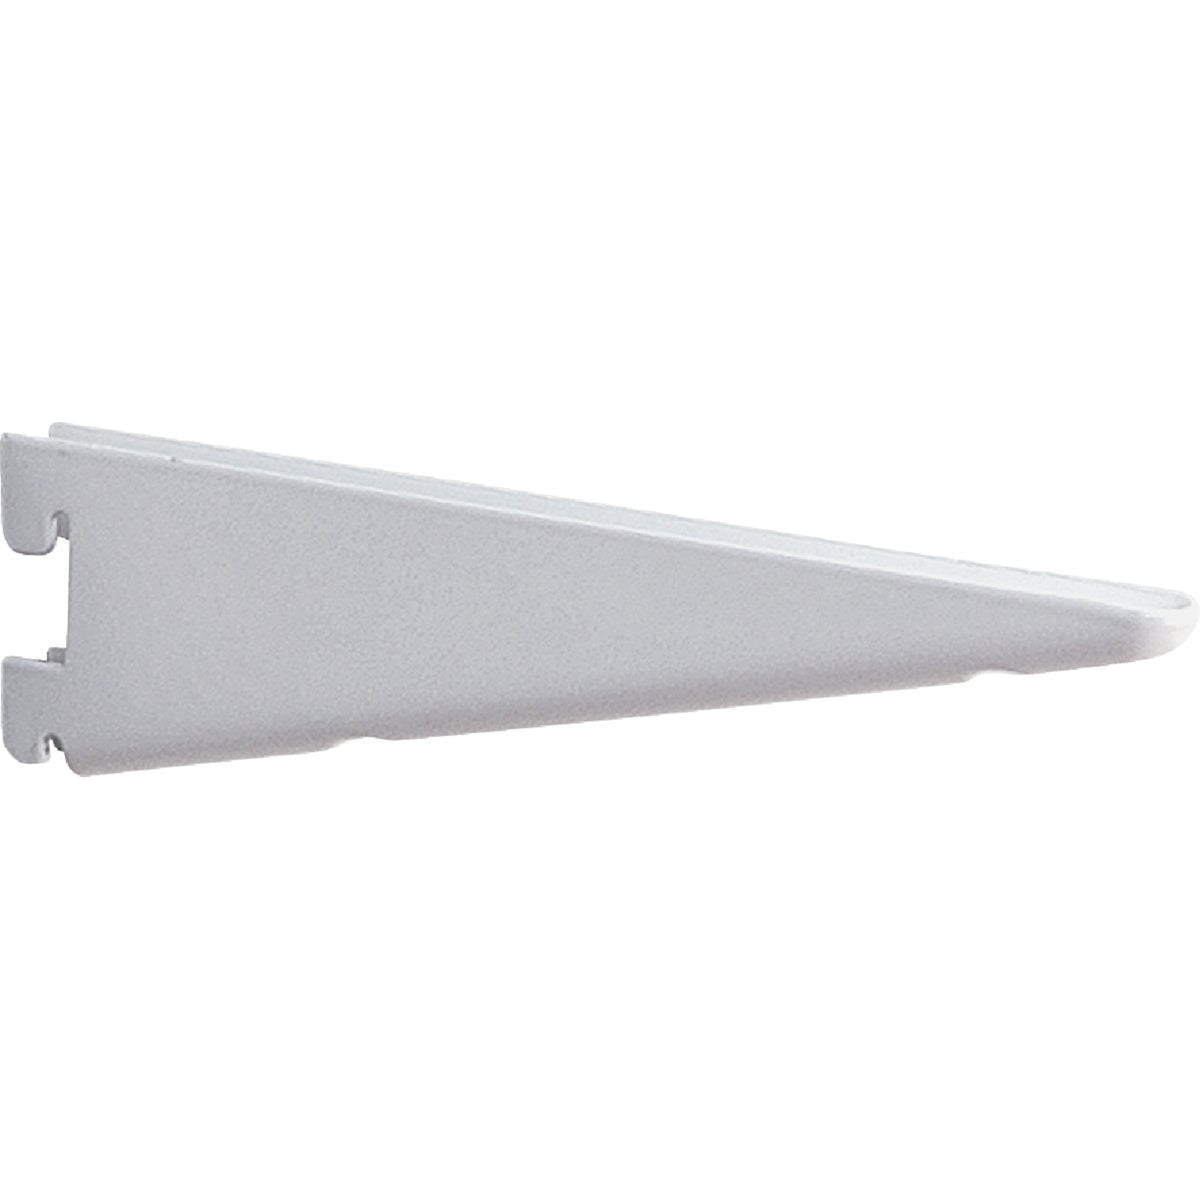 "18-1/2"" WHITE BRACKET - 182WH18.5 by Knape & Vogt Mfg Co"